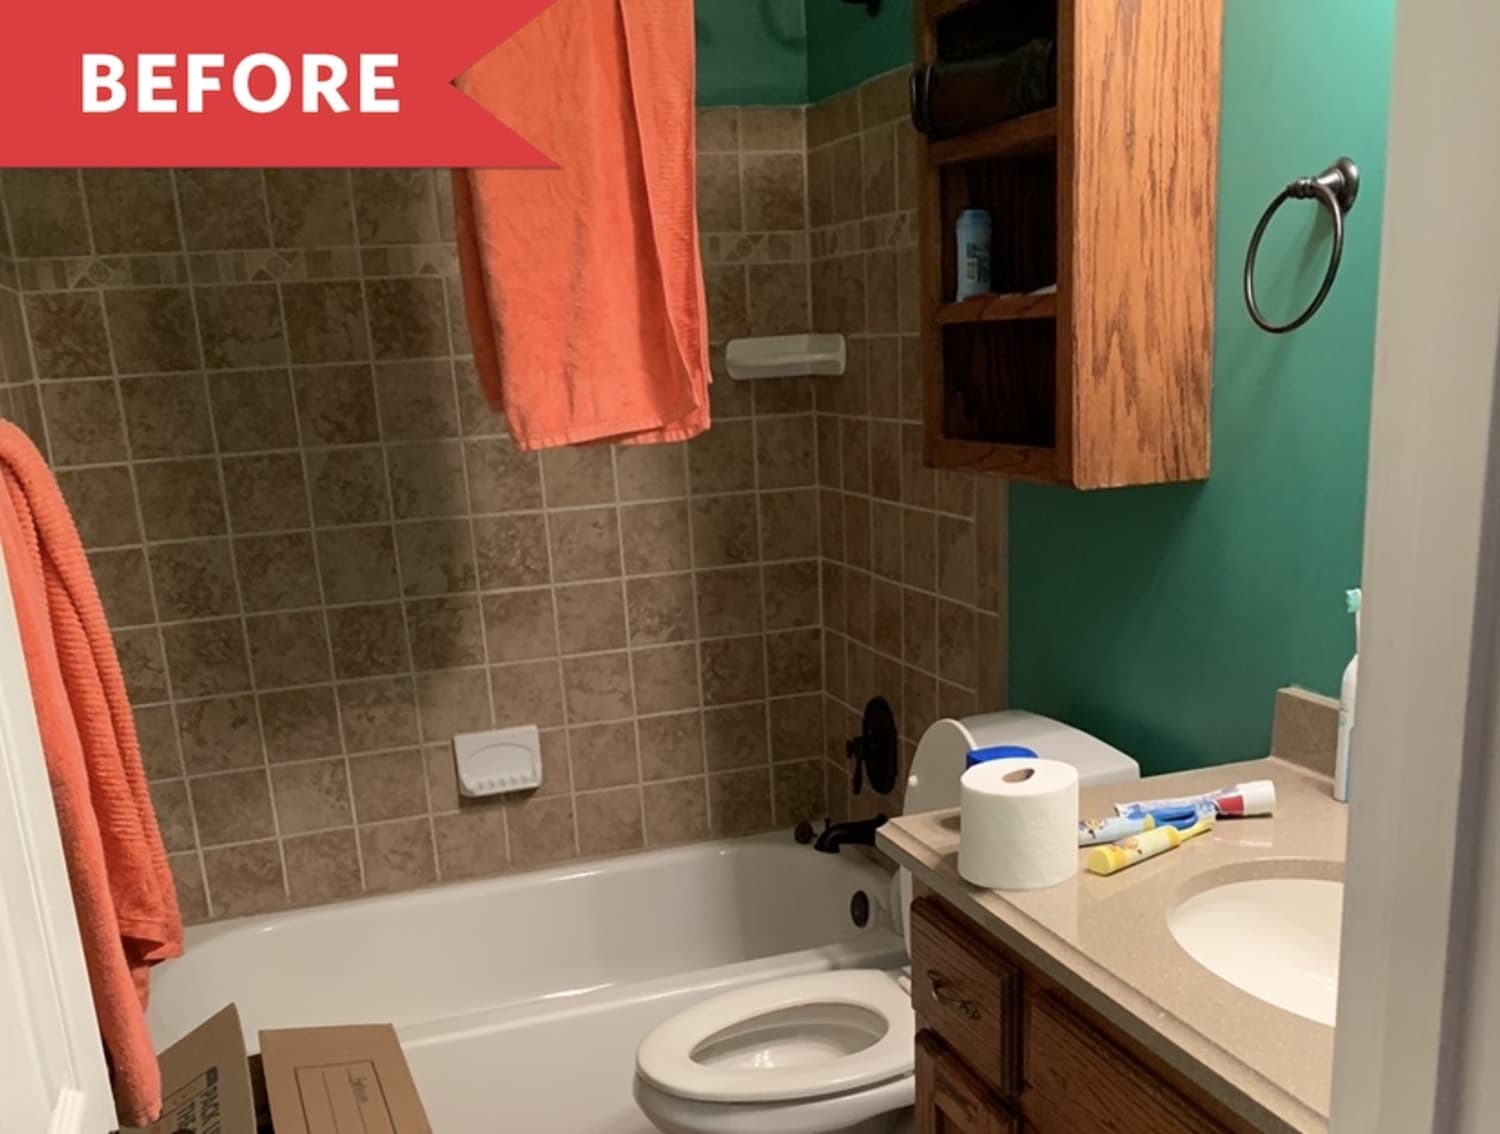 Before and After: Paint Is the Star in This $250 Bathroom Refresh